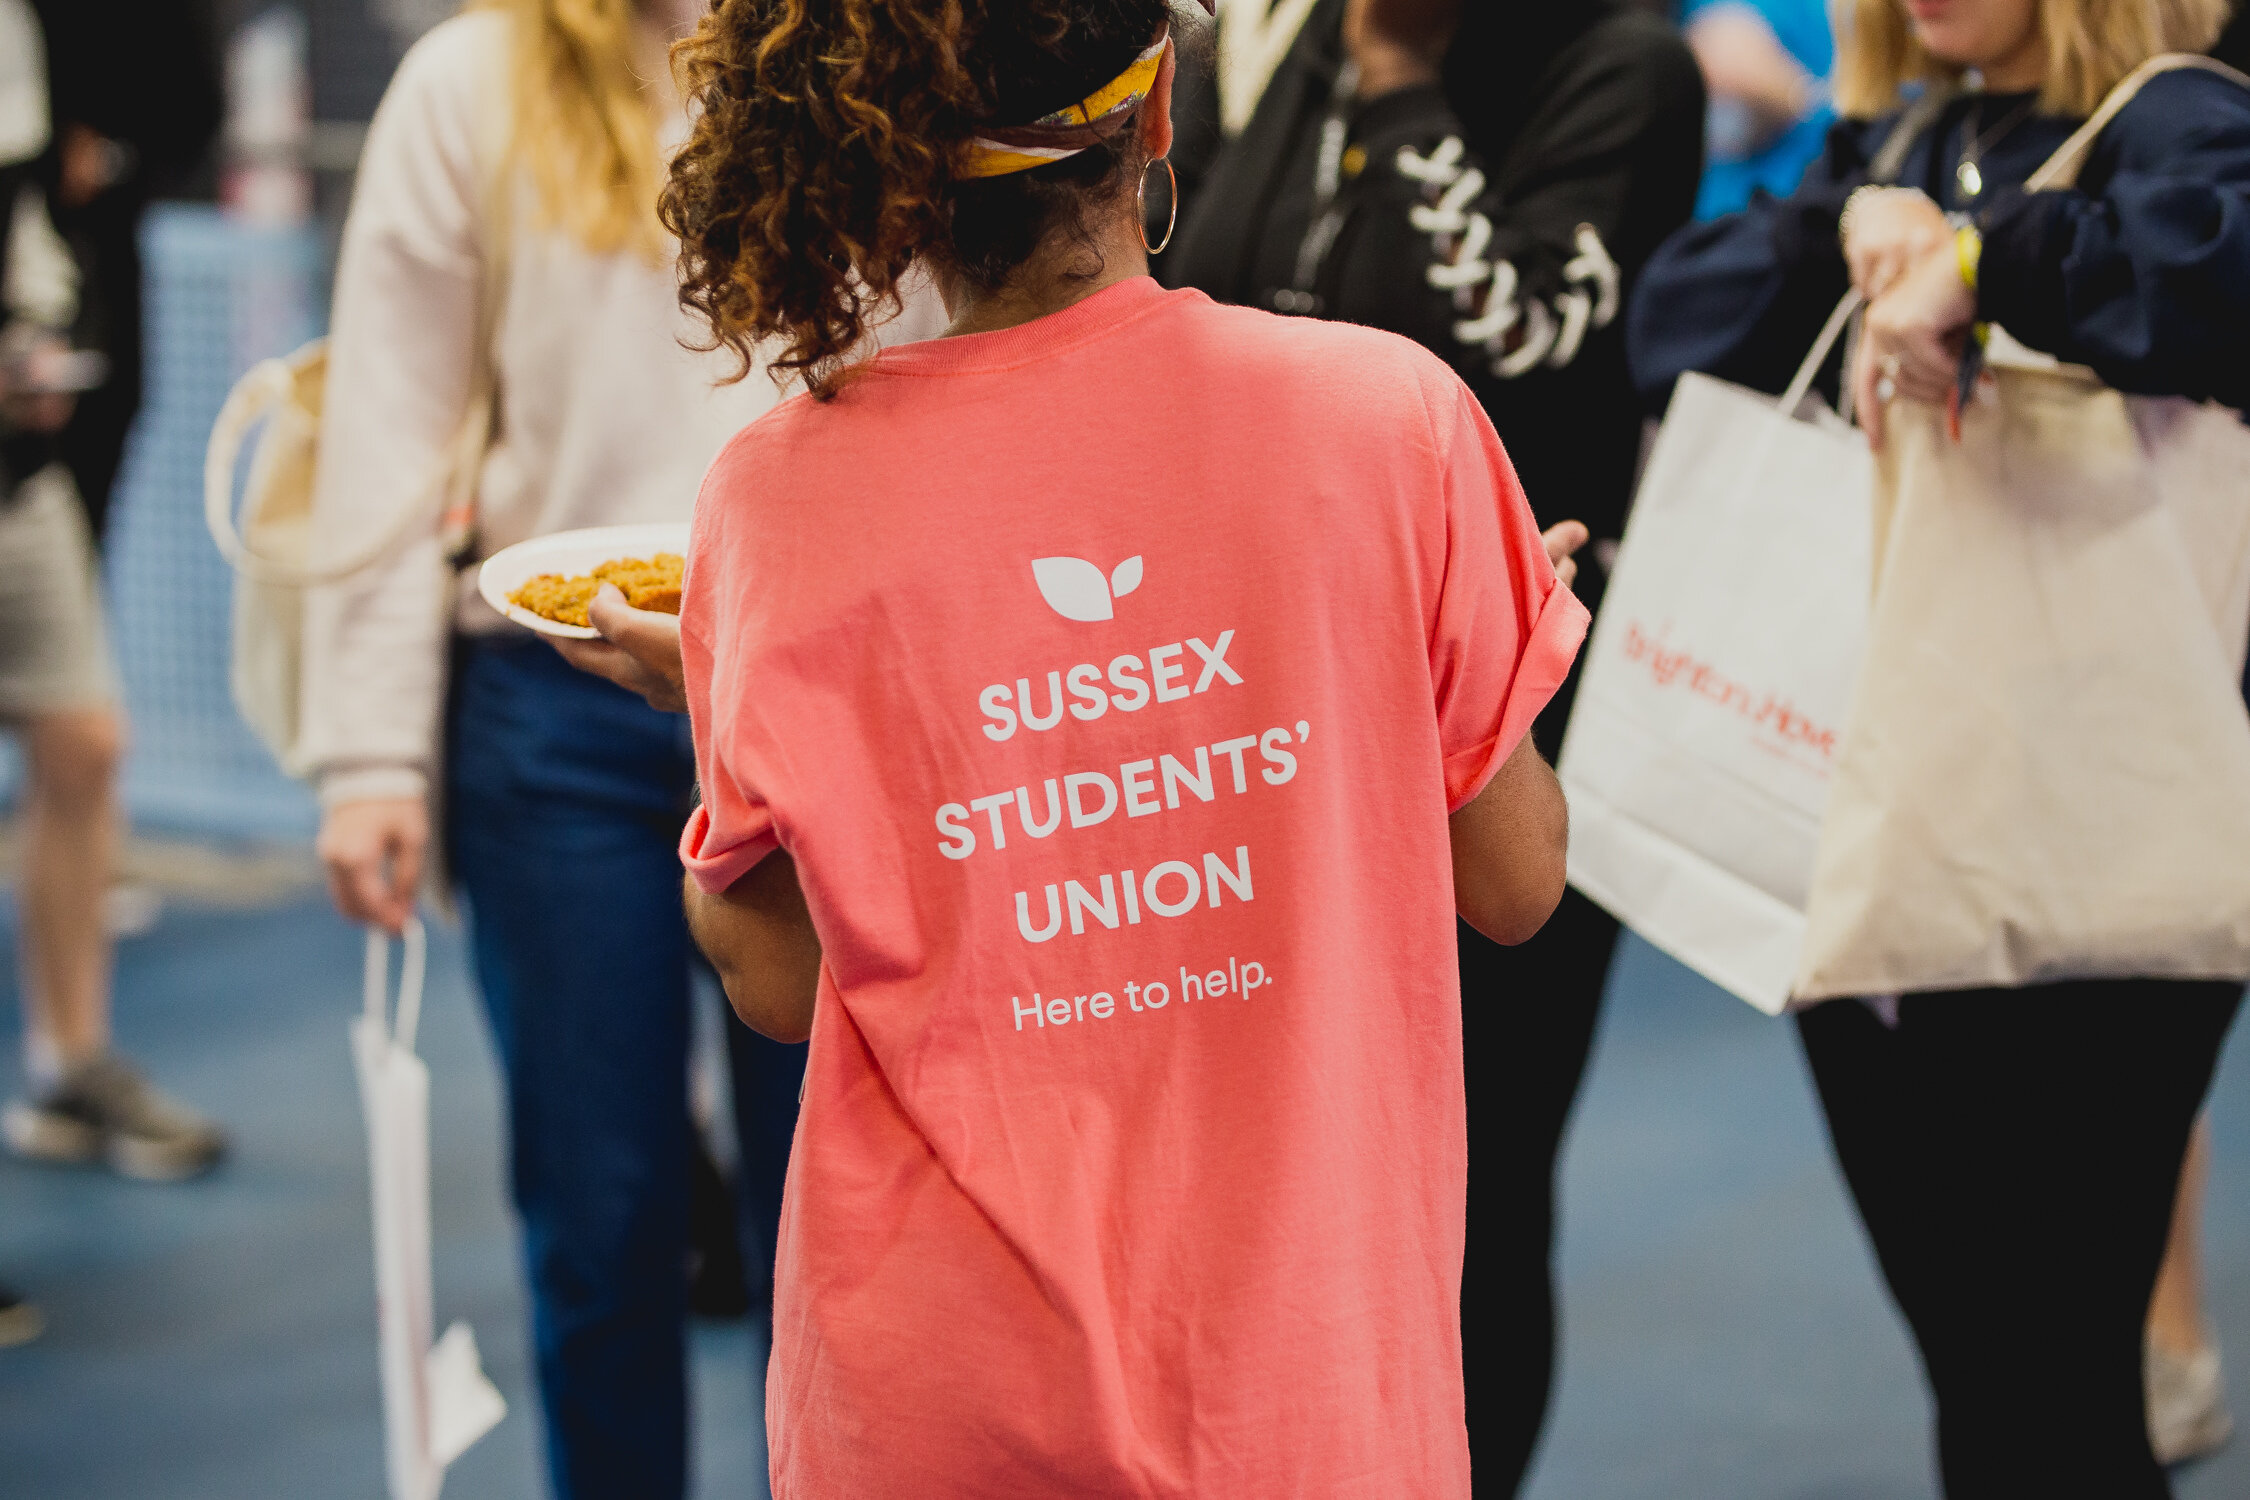 University of Sussex Student Union 2019